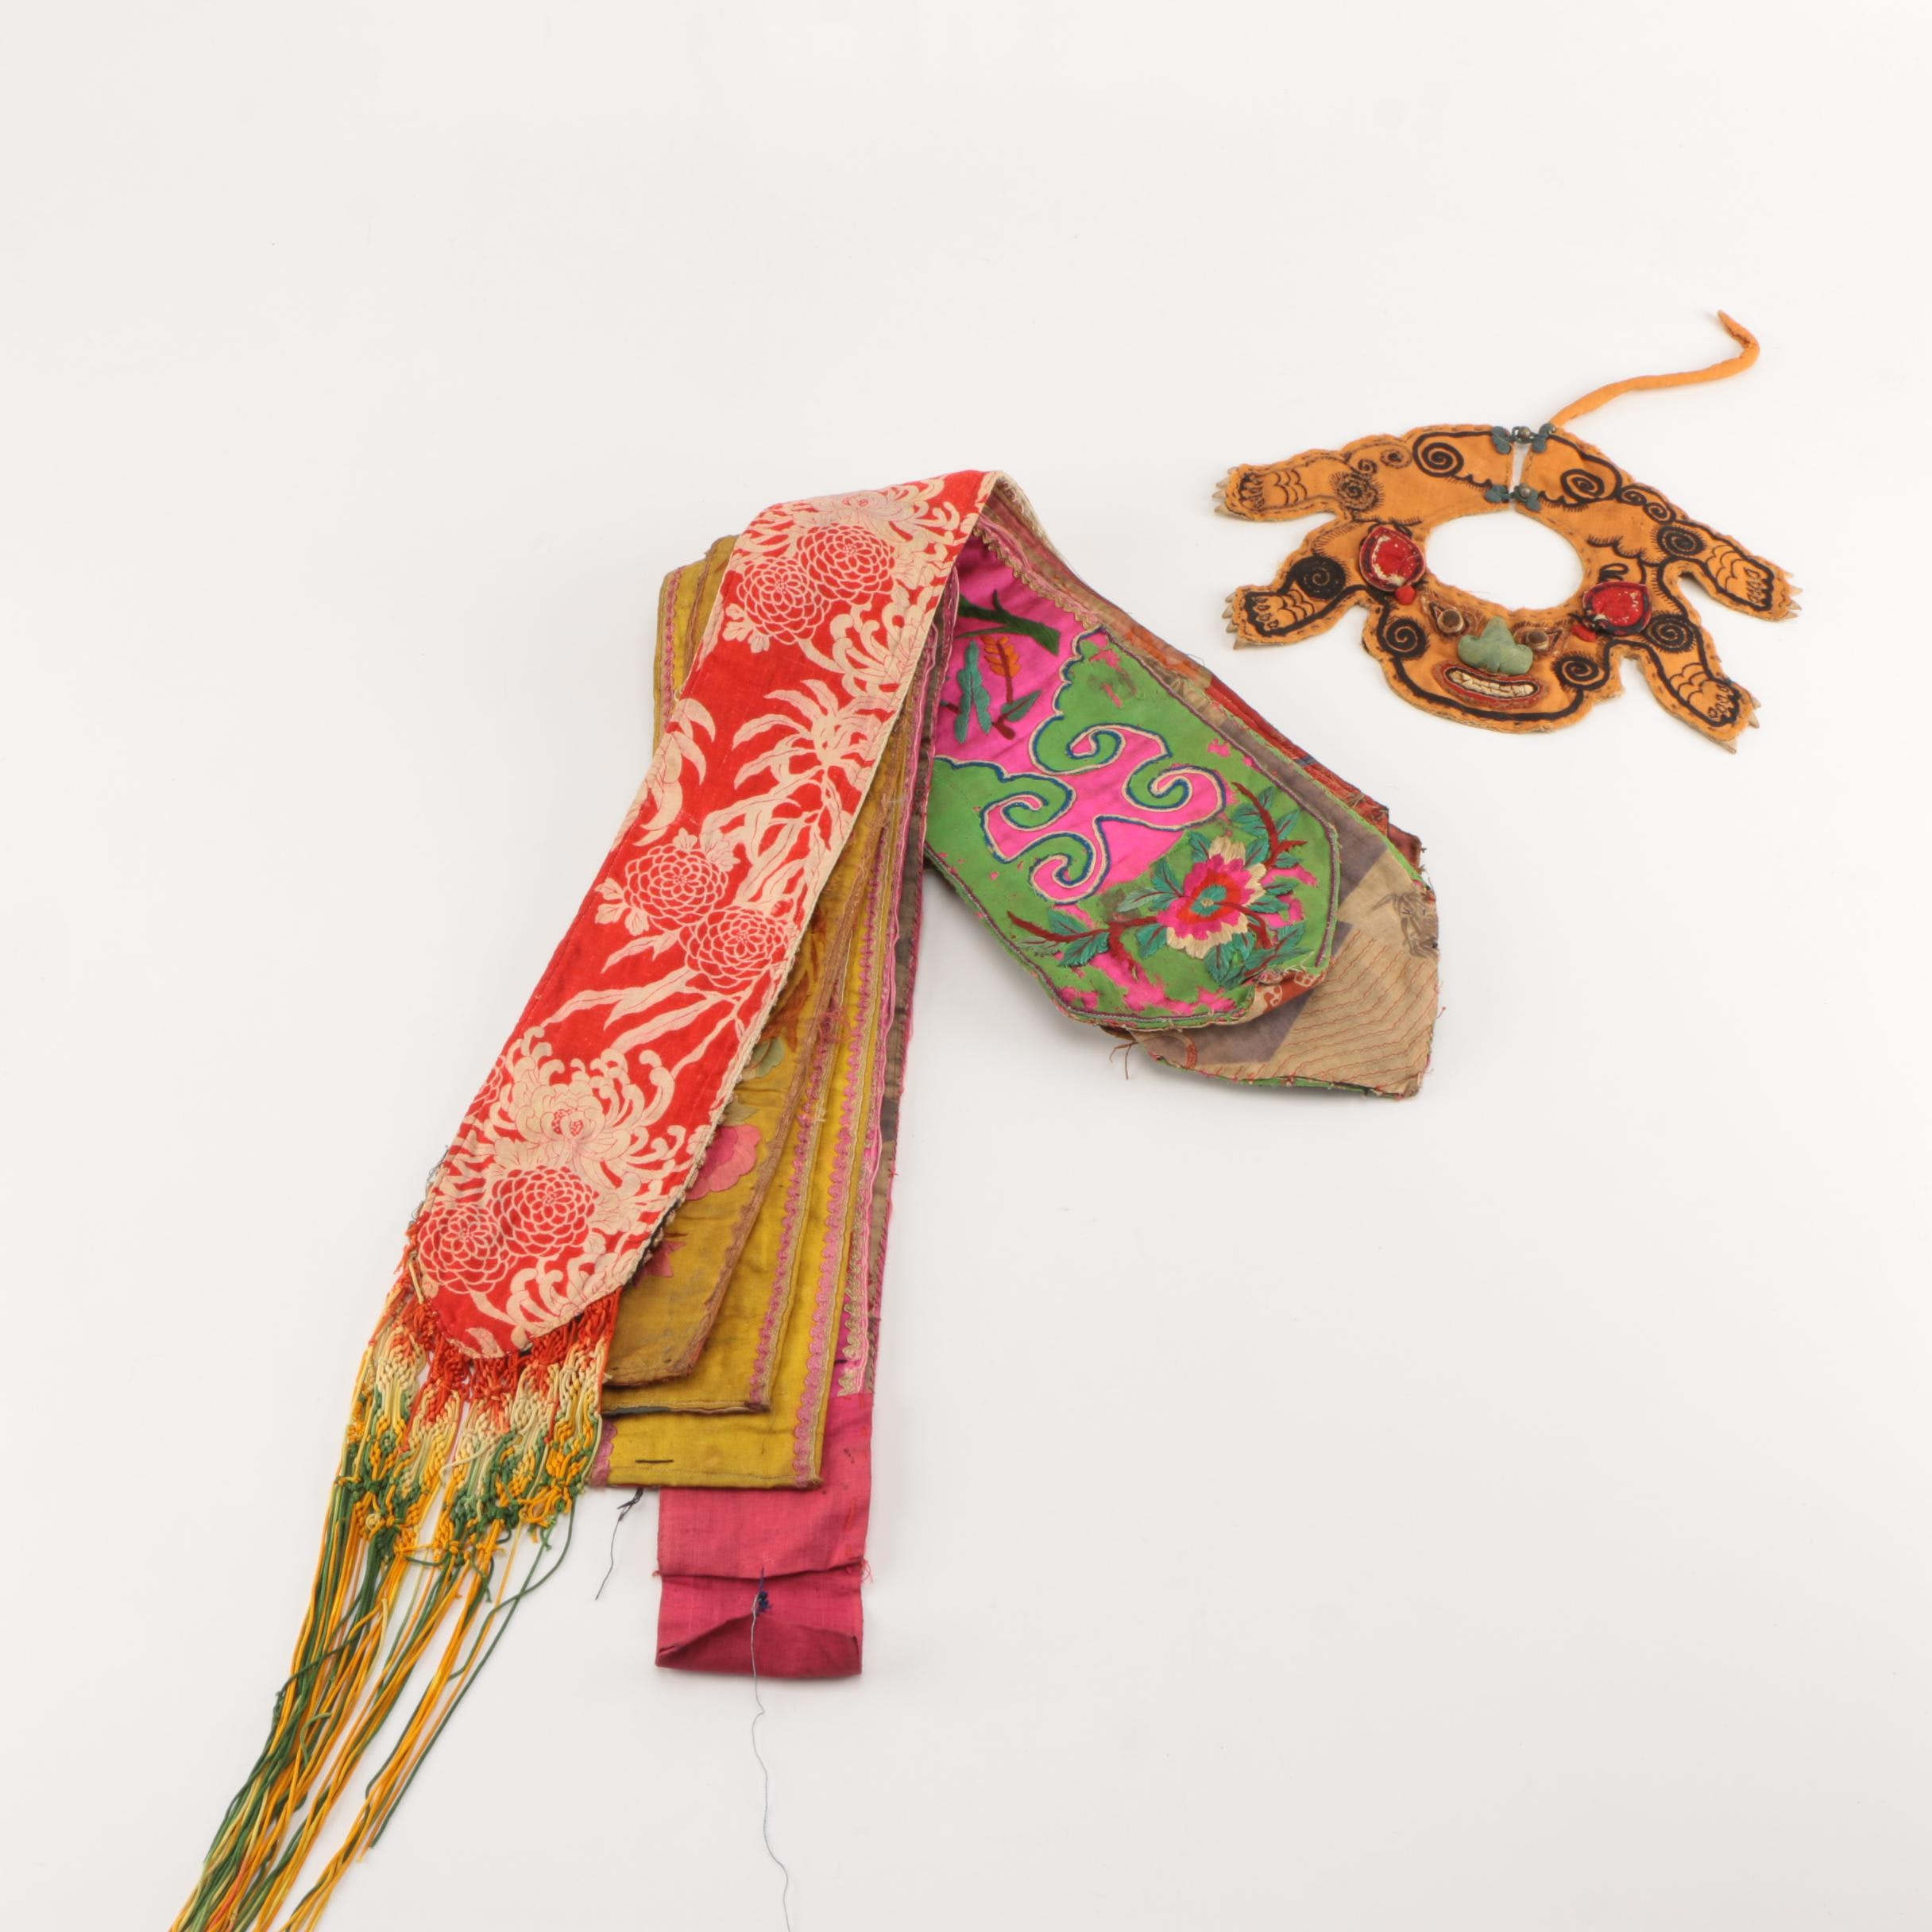 Chinese Embroidered Collars, Textiles and Decor